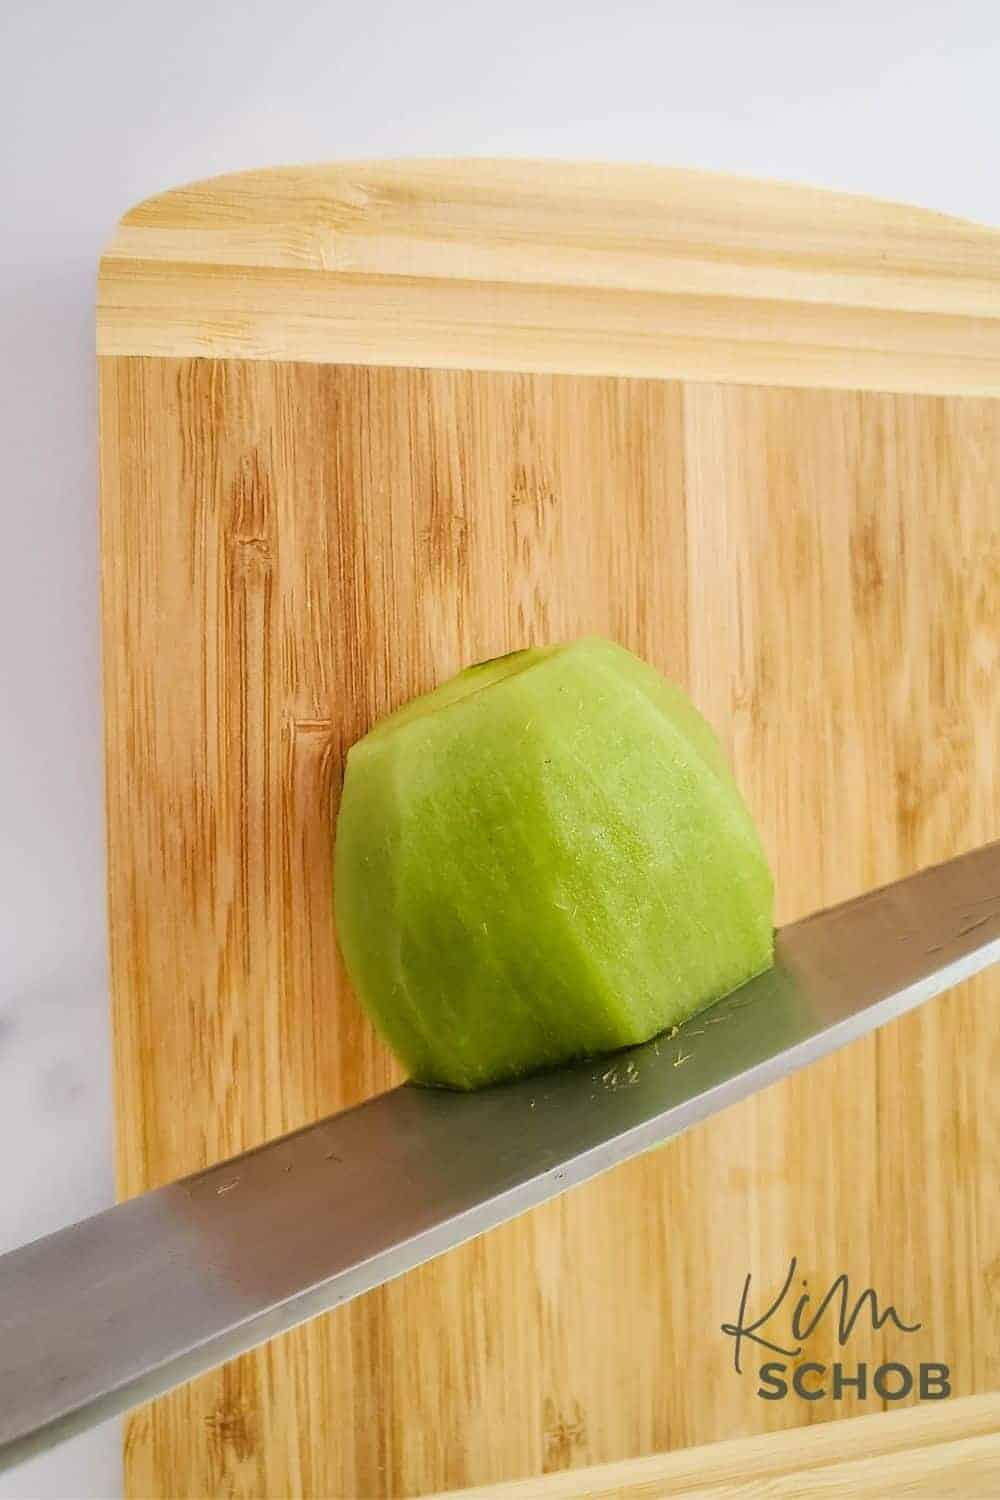 kiwi on a cutting board with a knife in it